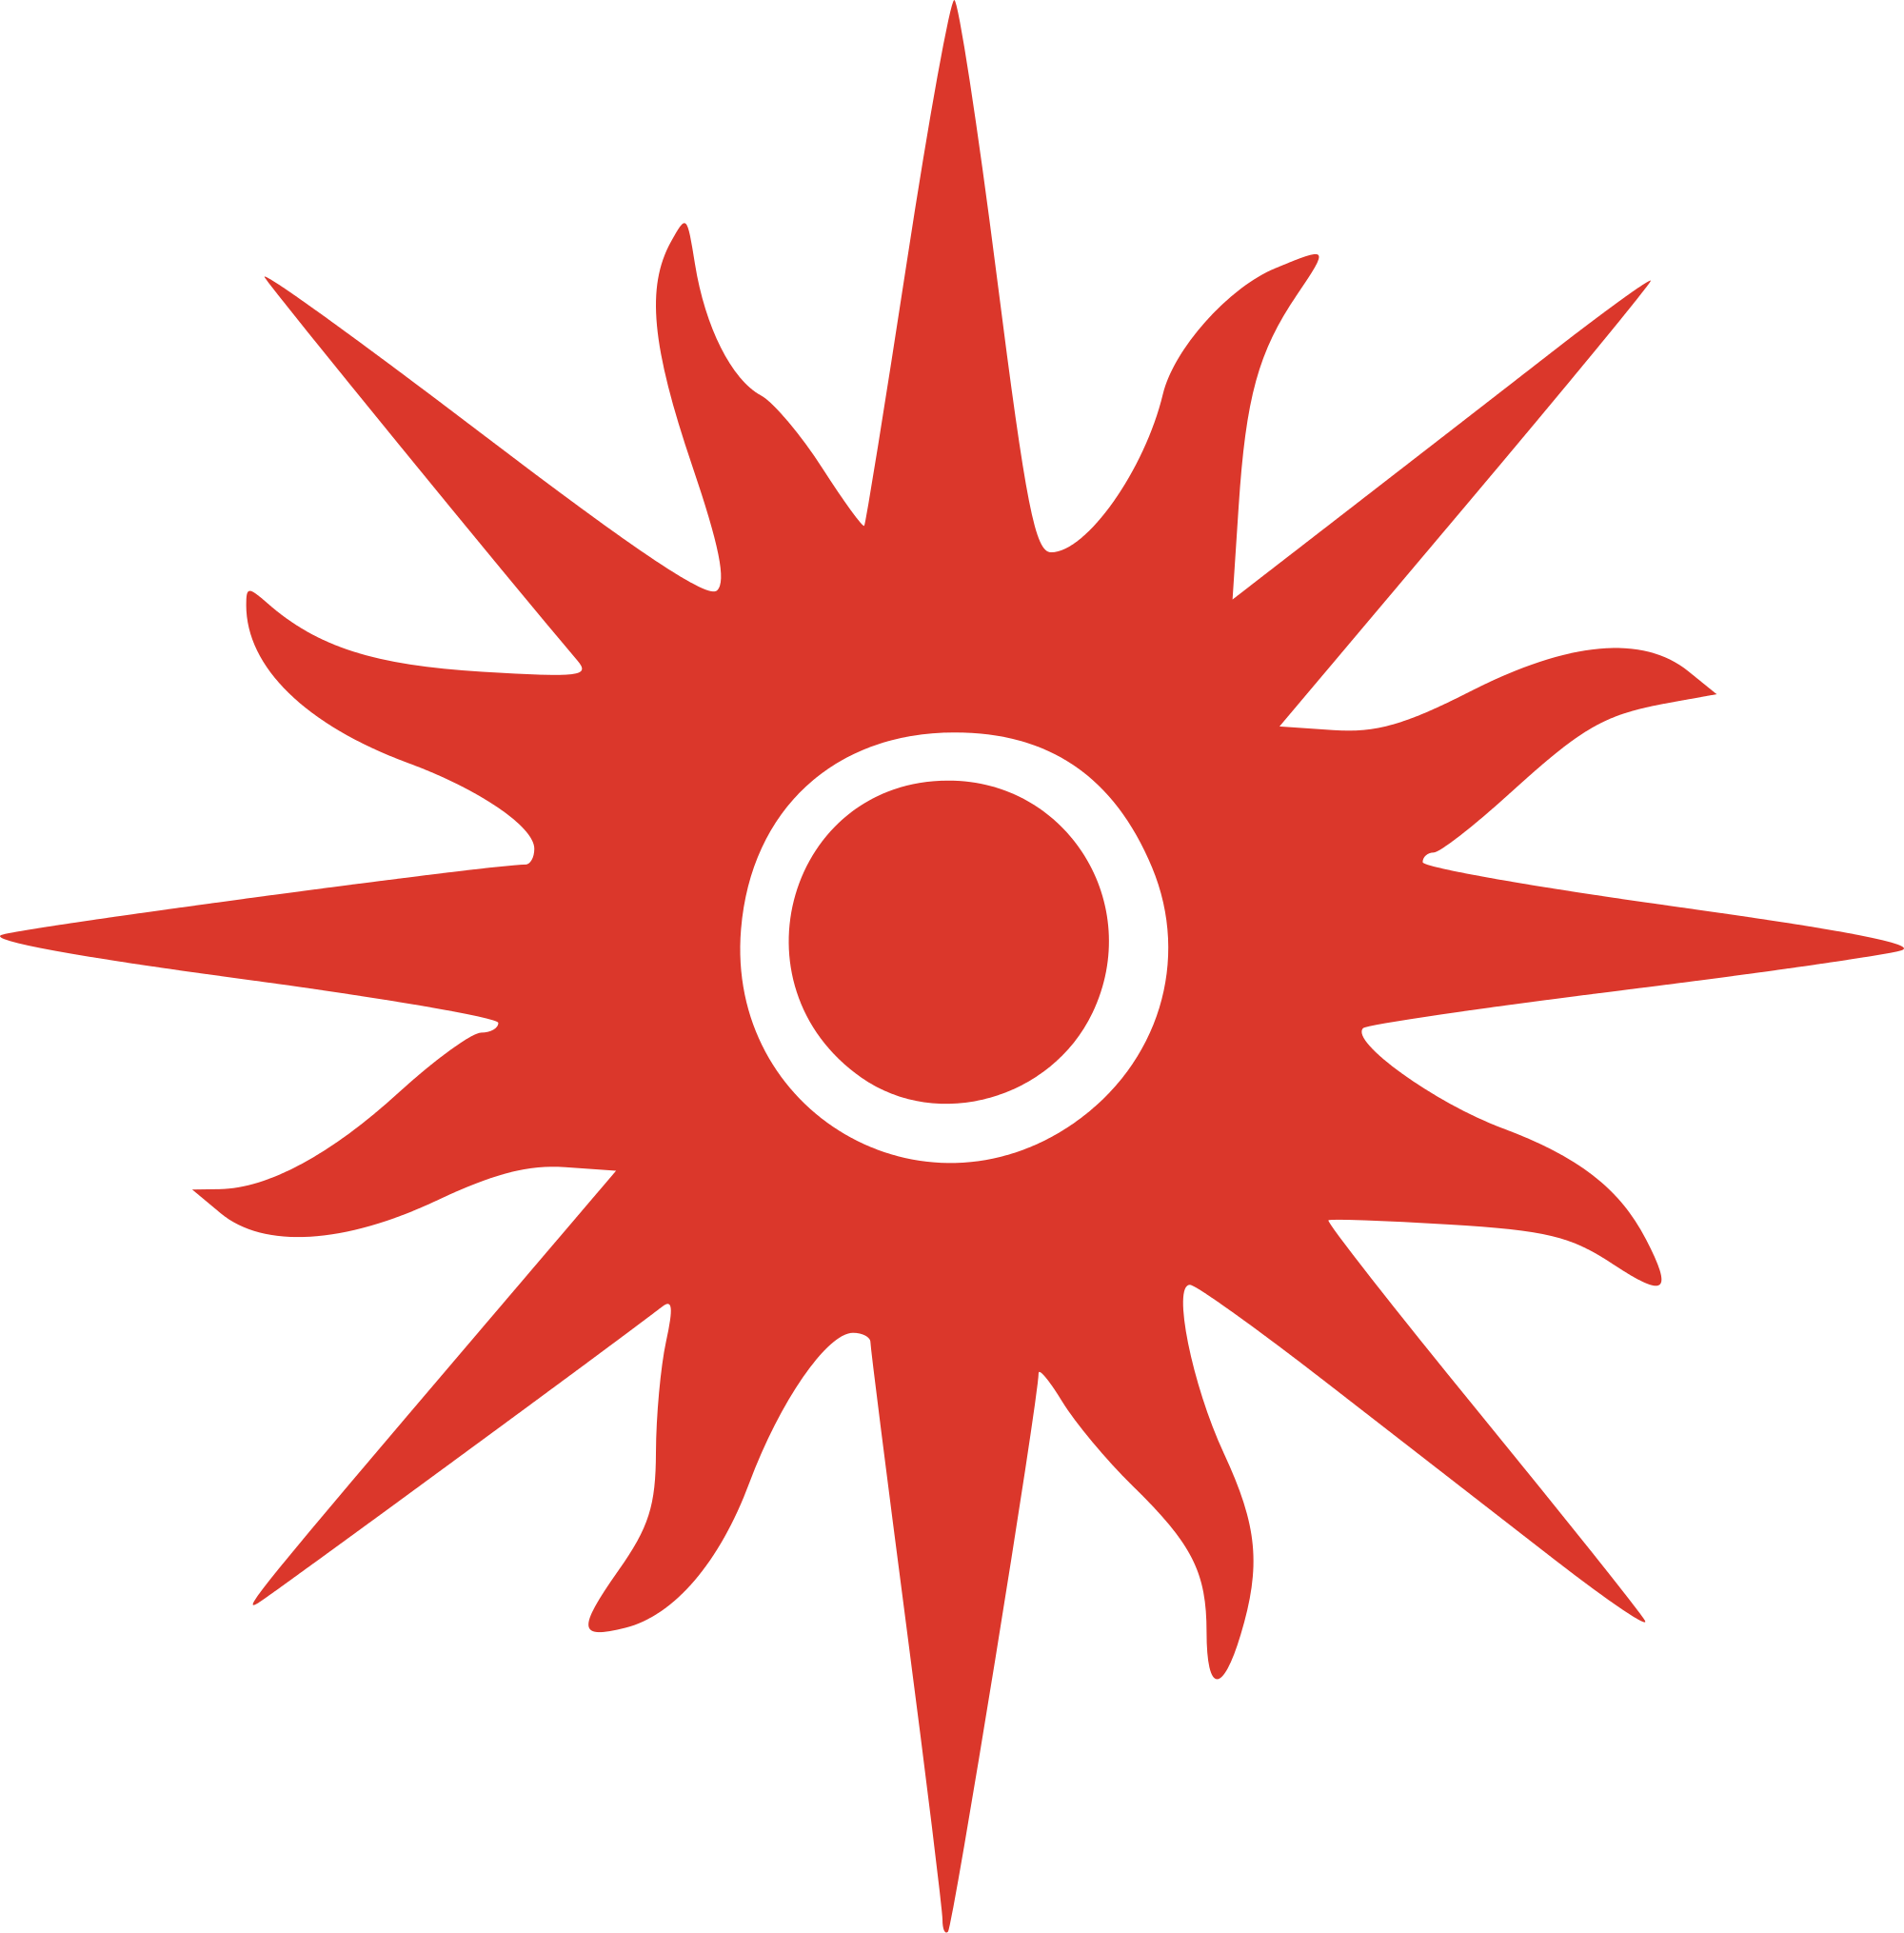 Png south pacific games 2015. Asian wikipedia logosvg